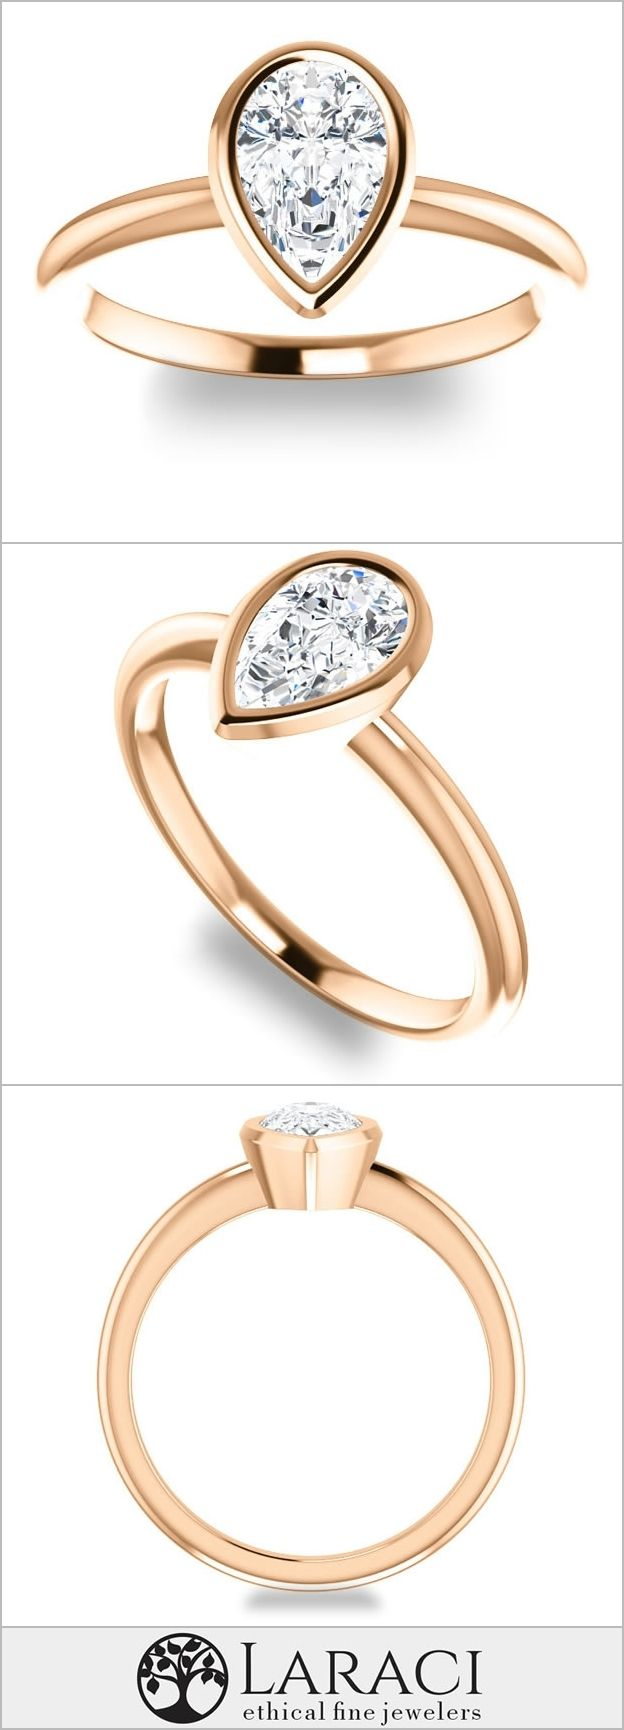 14K Rose Gold Solitaire Bezel Engagement Ring set with a 0.94ct (8x5mm) Pear Forever Brilliant Moissanite